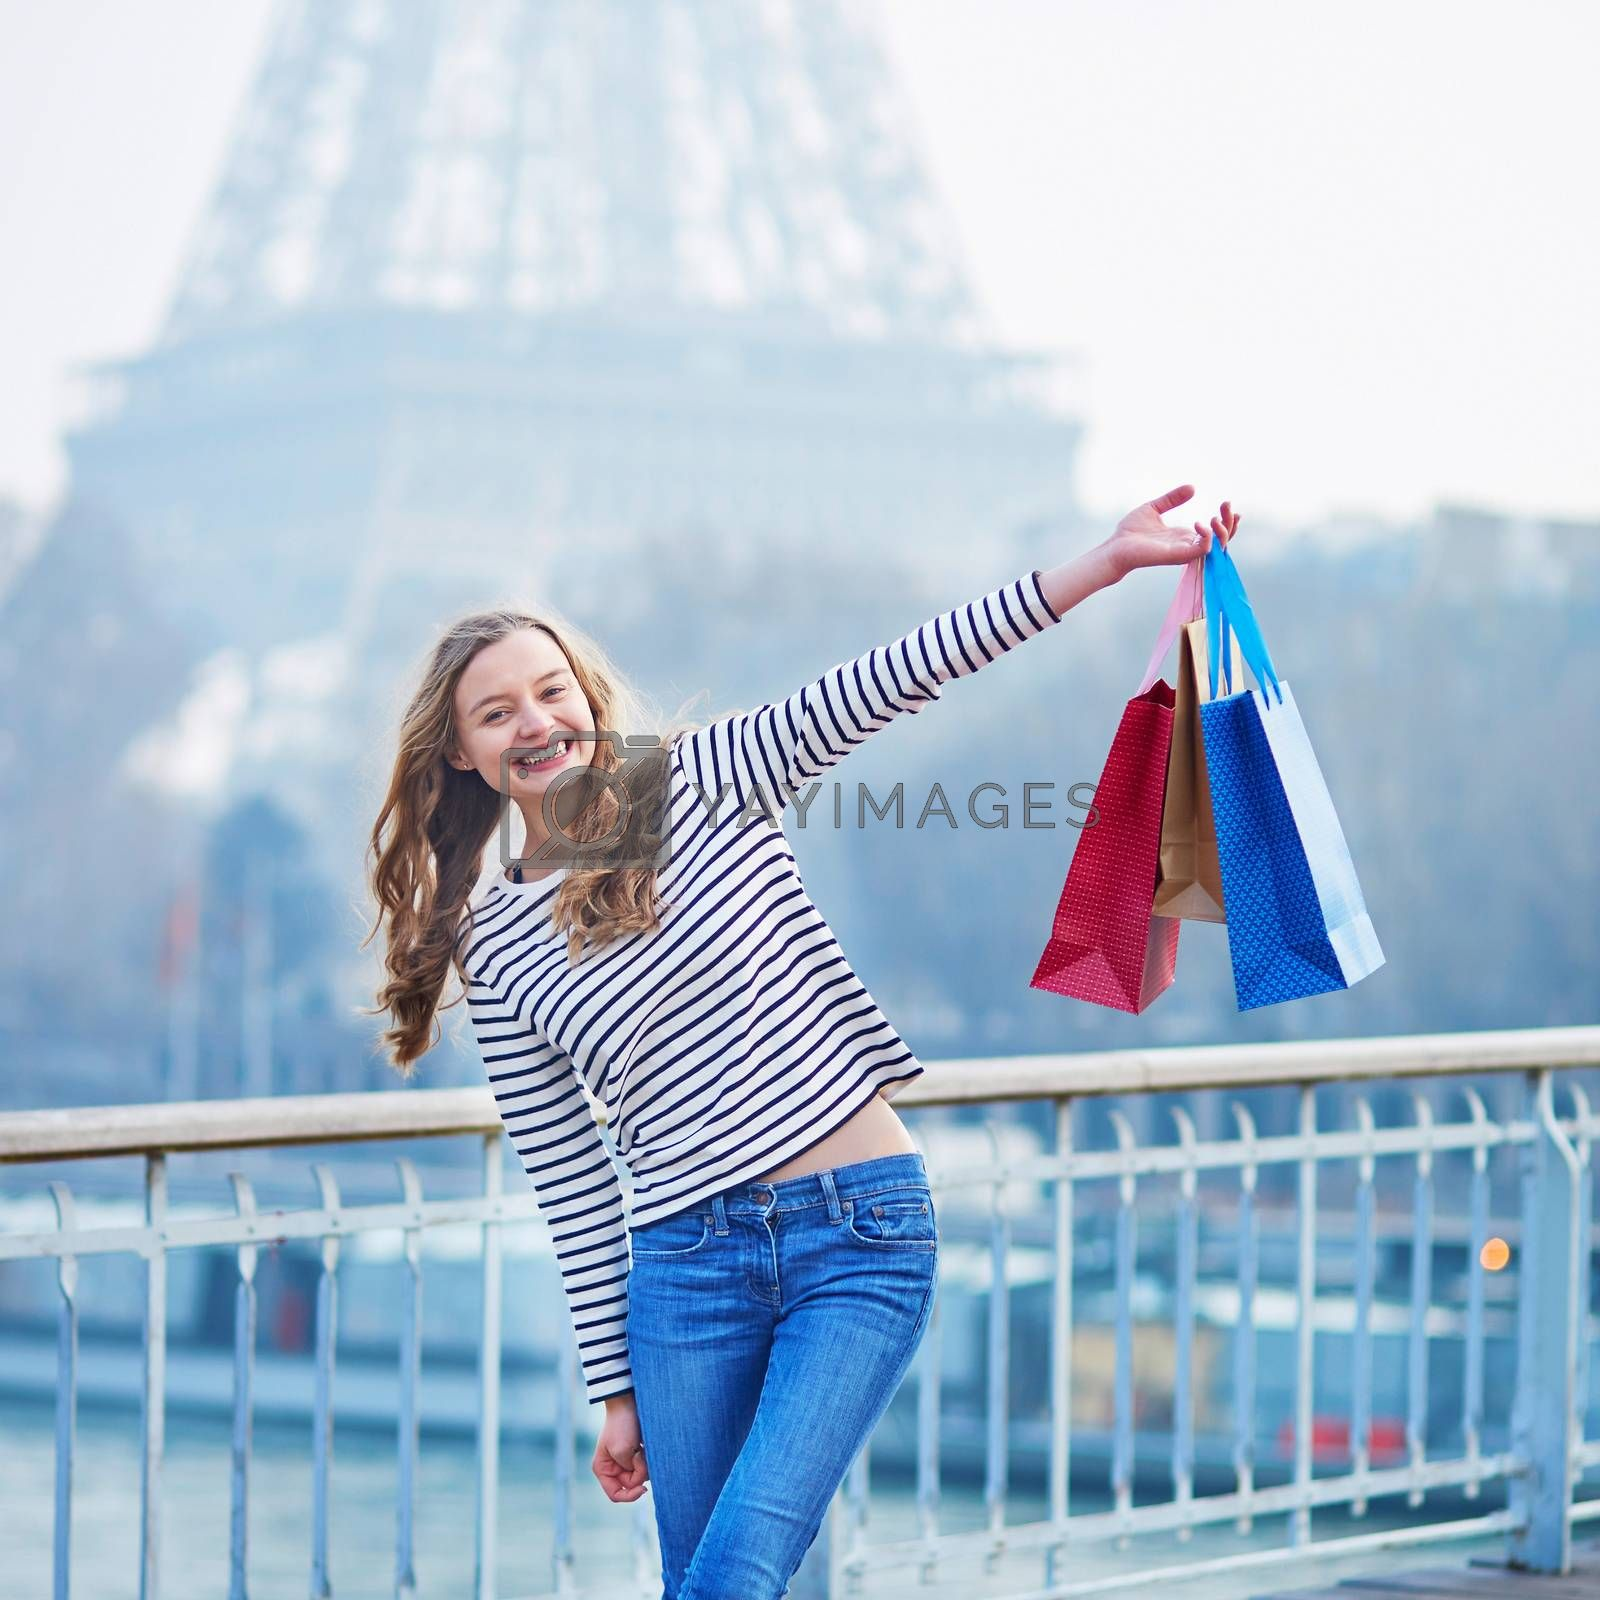 Cheerful young French girl with shopping bags near the Eiffel tower in Paris. Tourism and shopping in France concept